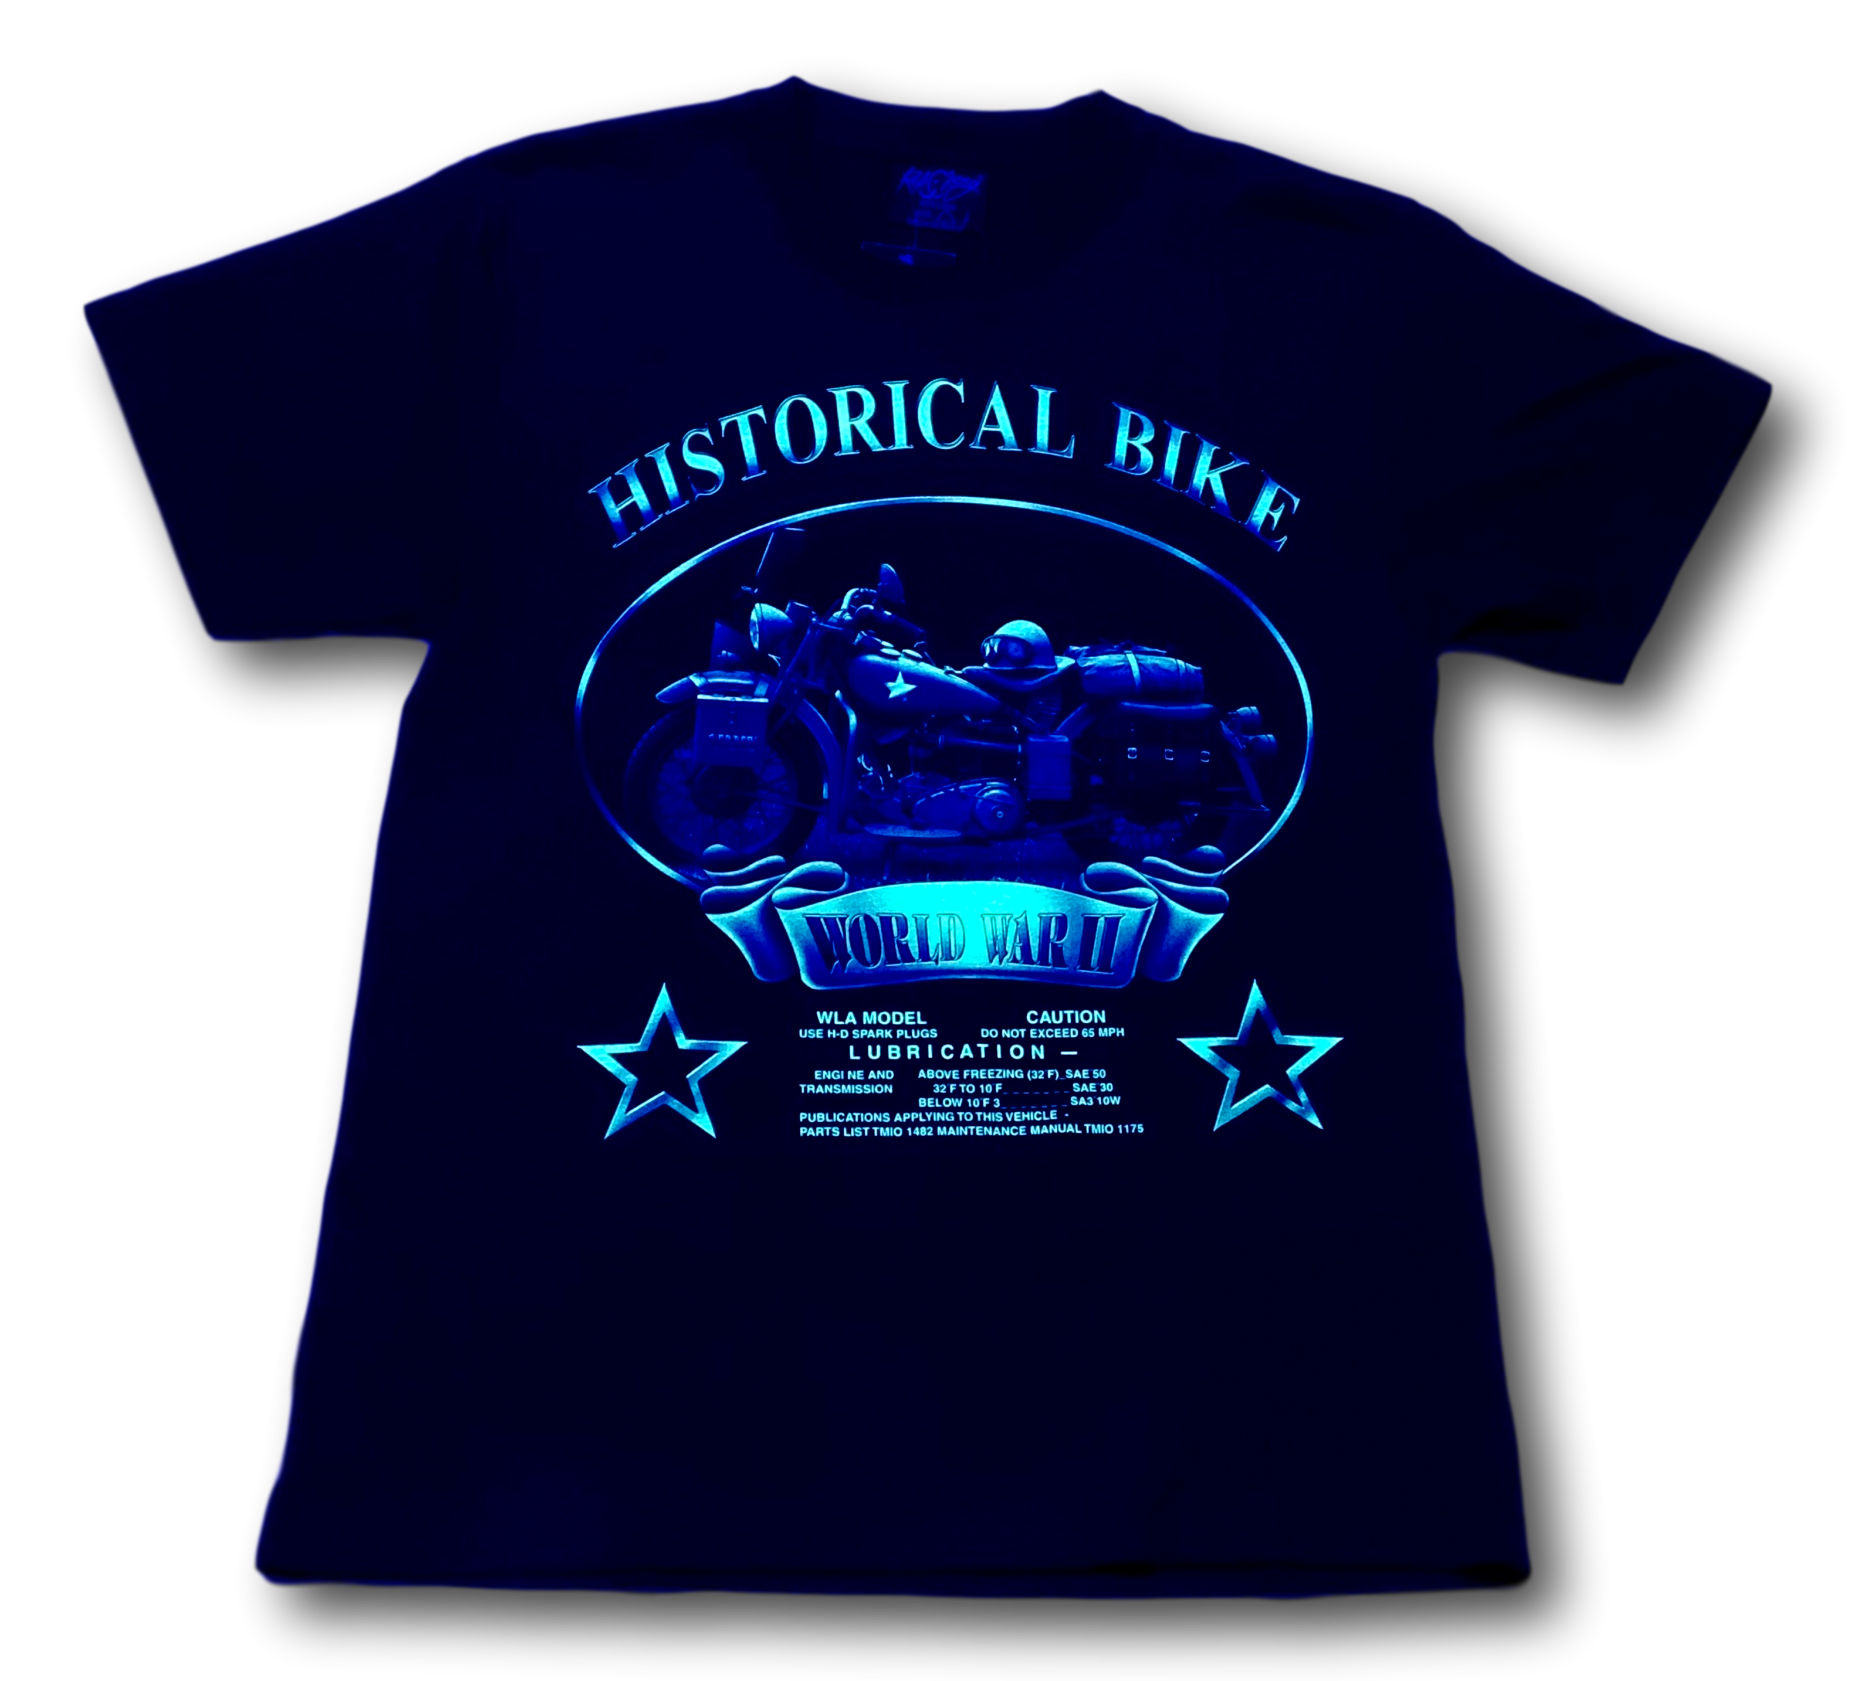 Historical Bike World War II Glow in the Dark HD Rock Chang T-Shirt